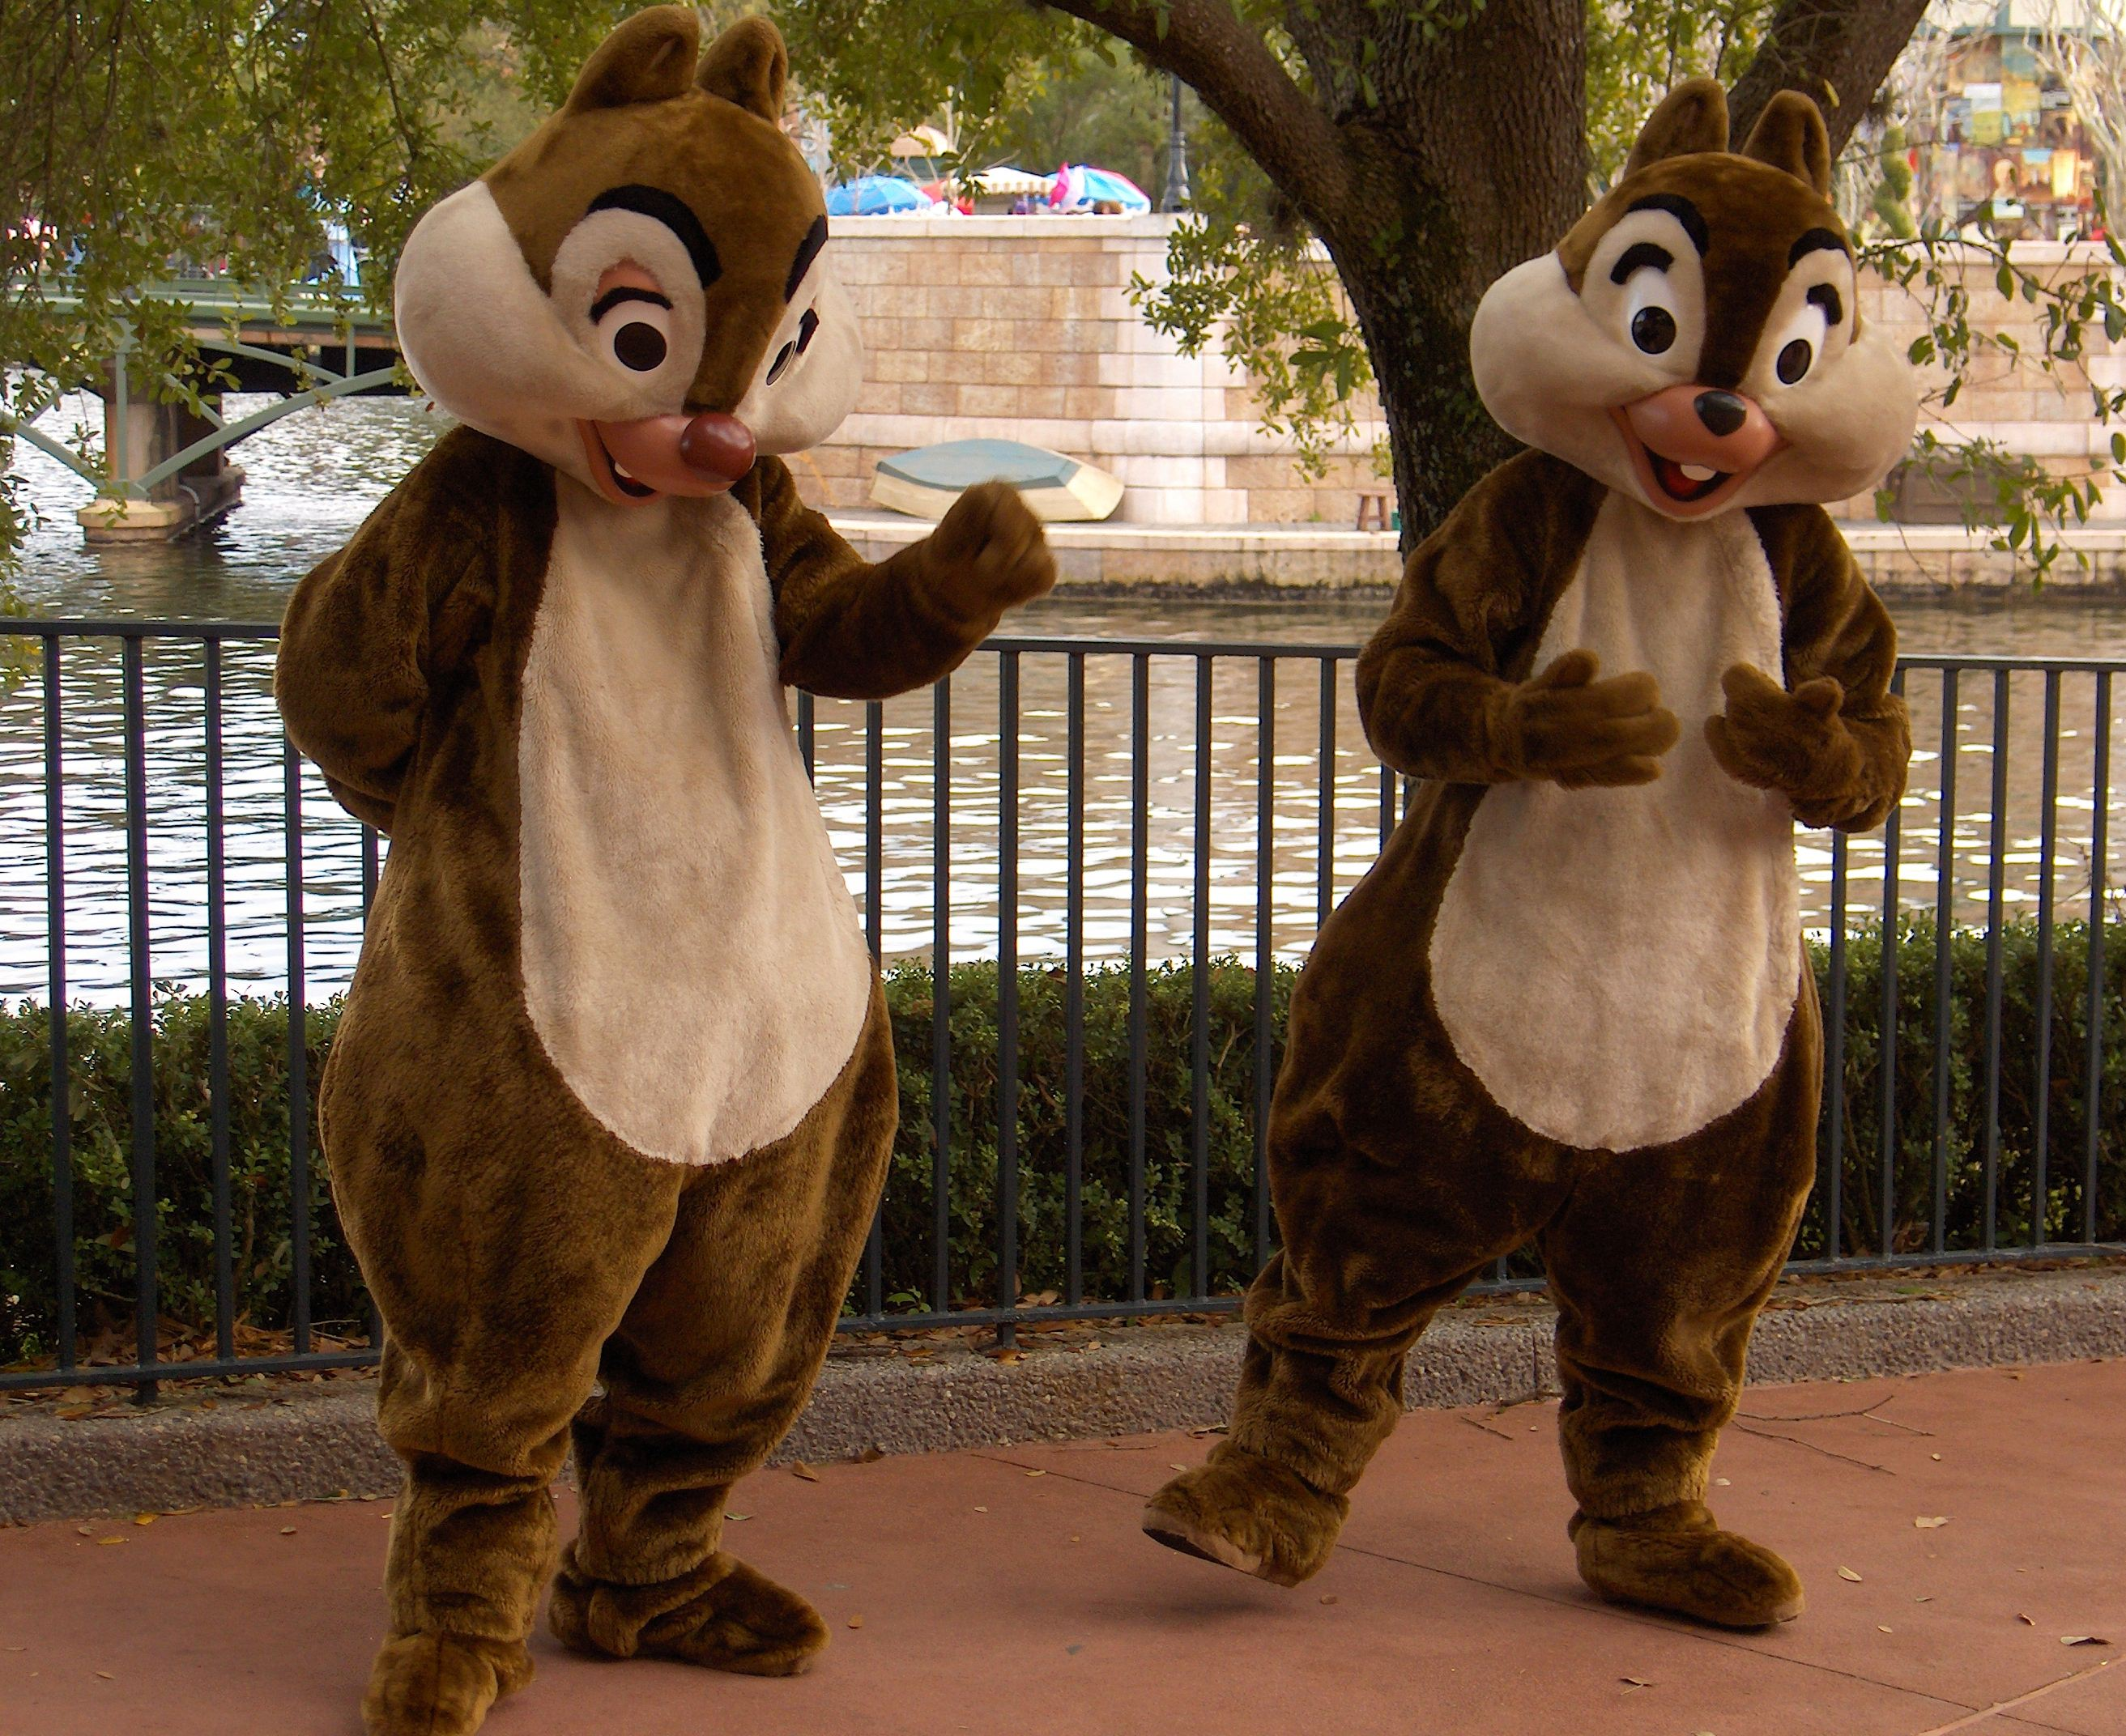 costumed chip and dale chipmunks - Dog friendly Kissimmee Florida